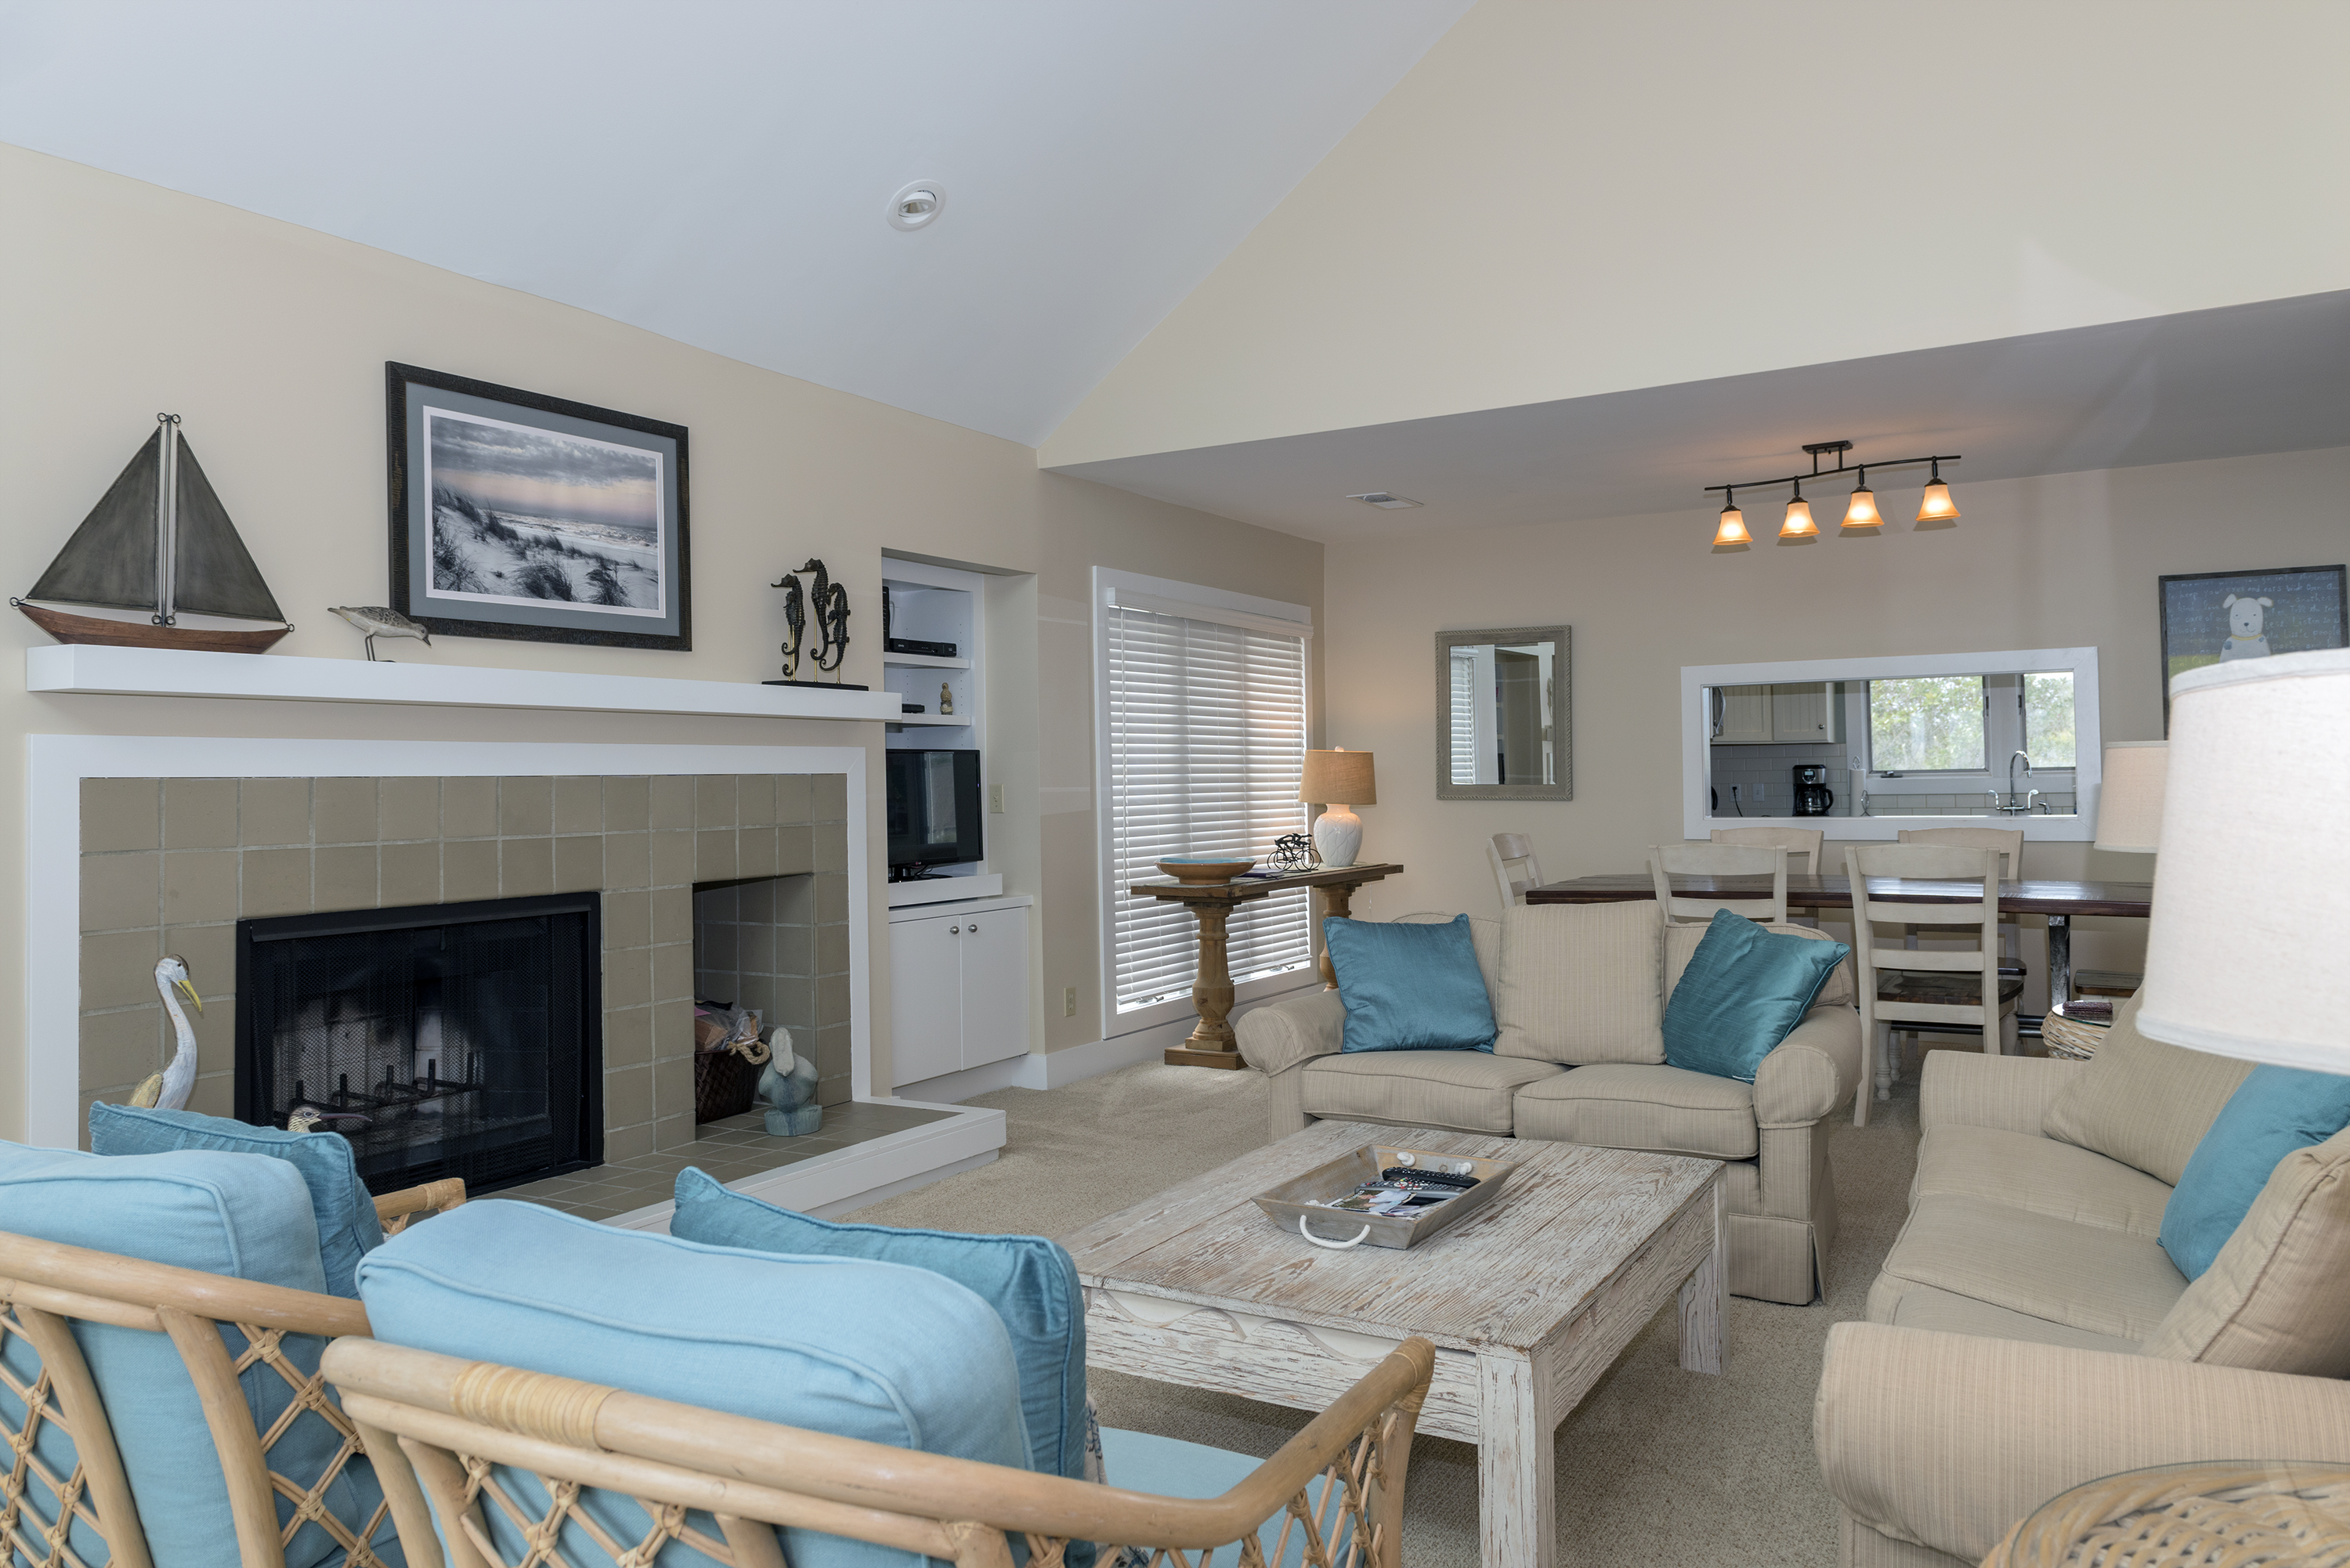 The open living room with a view to the dining and kitchen area.